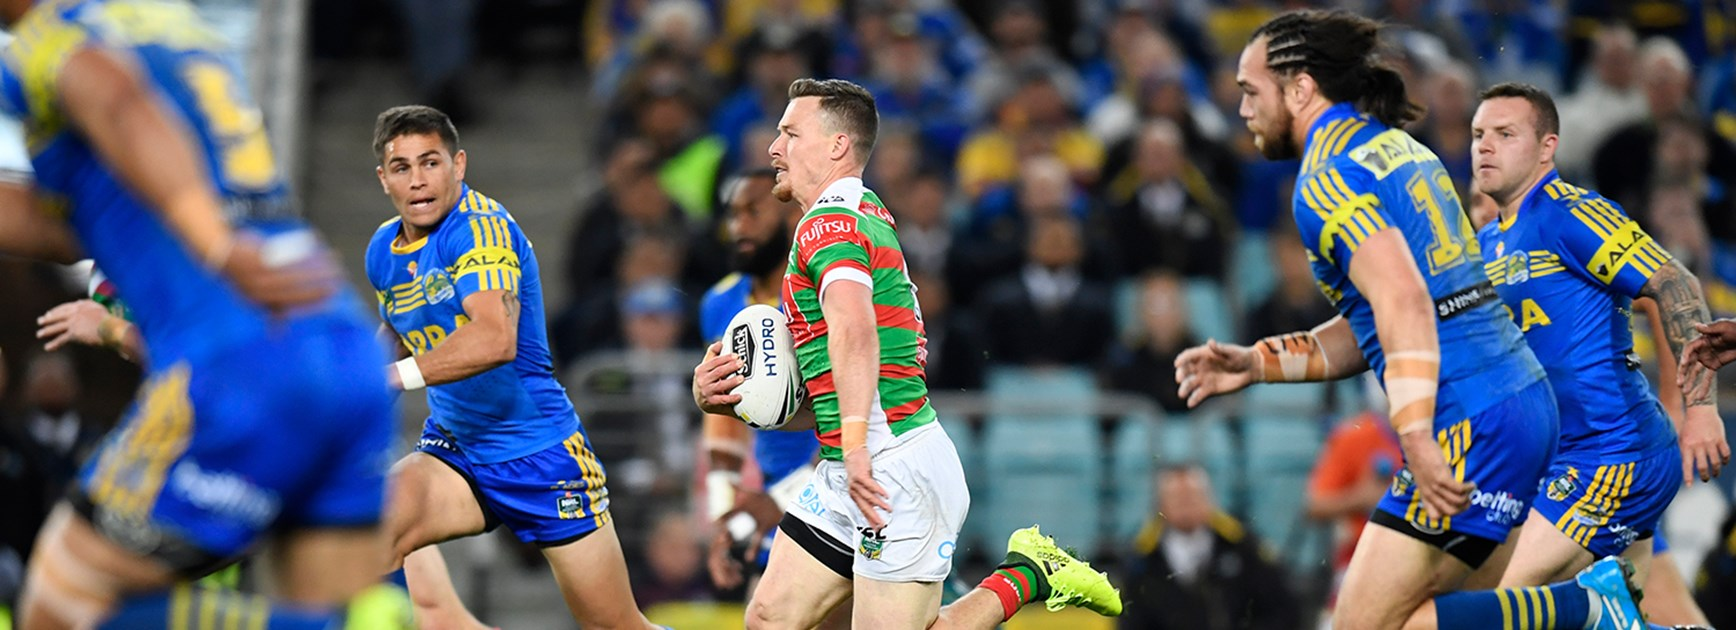 Graham out of Round 15 clash with Eels